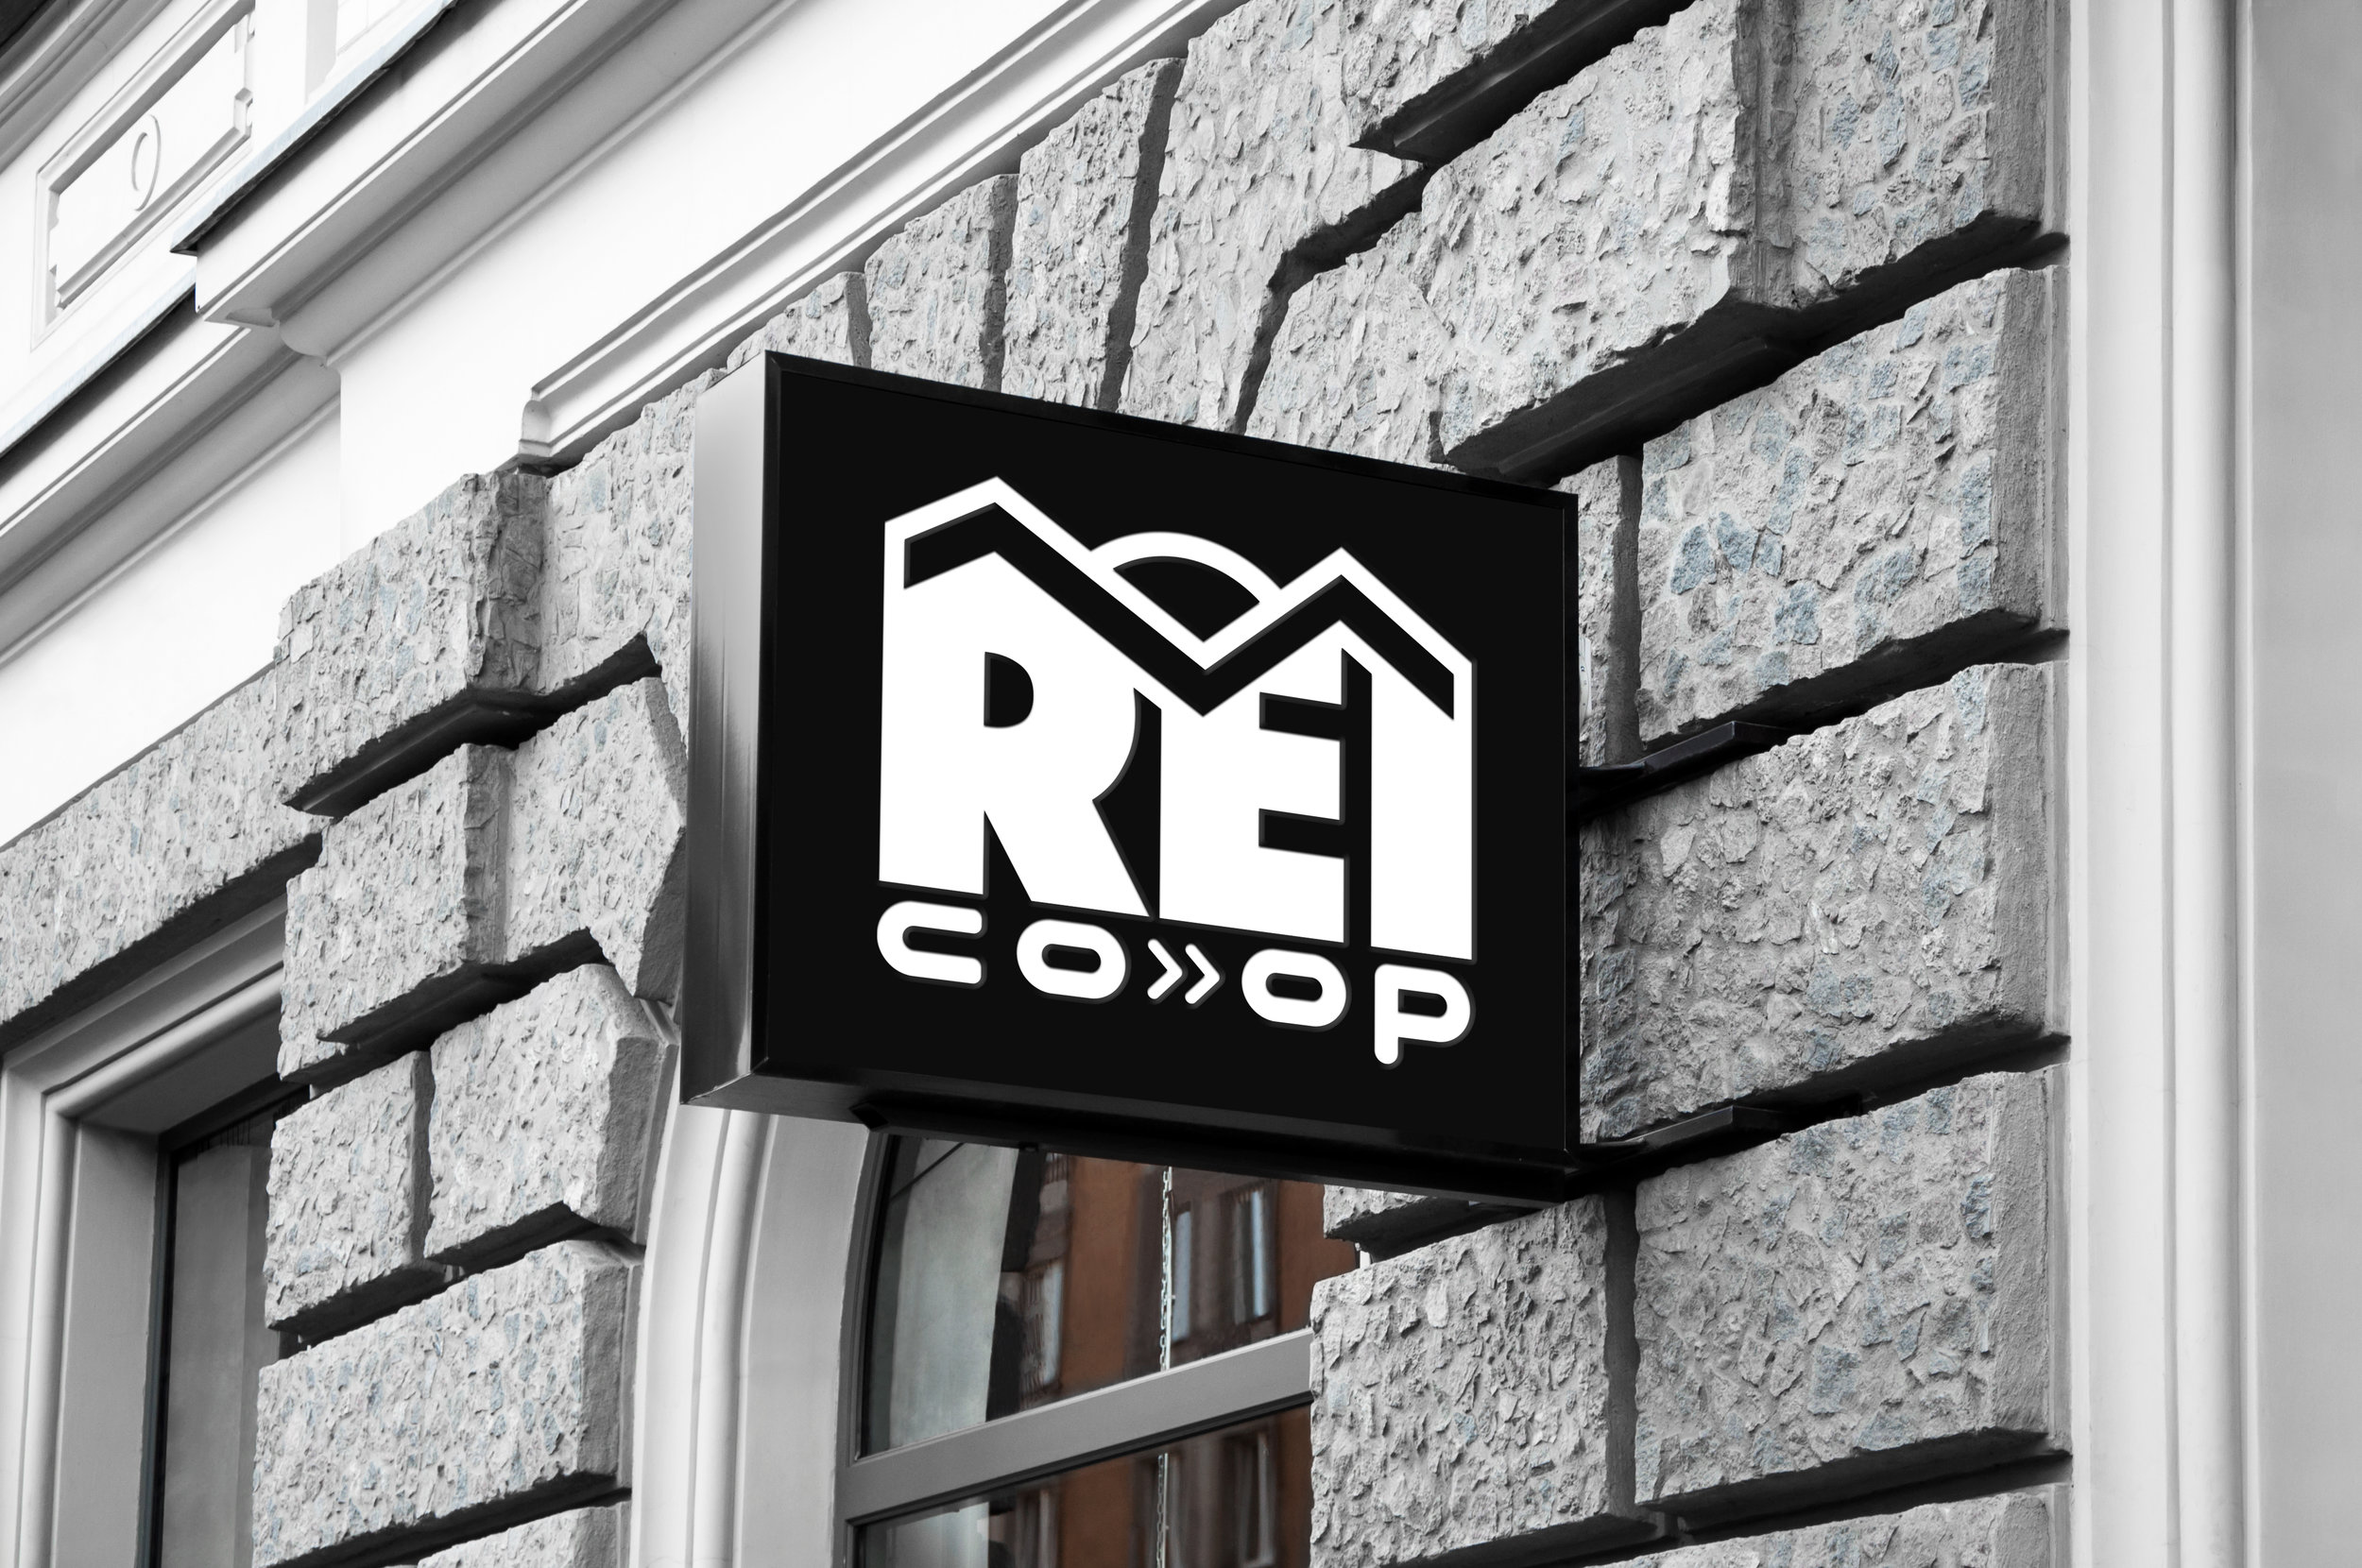 05_Restaurant & Coffee Shop Signs Mockup.jpg